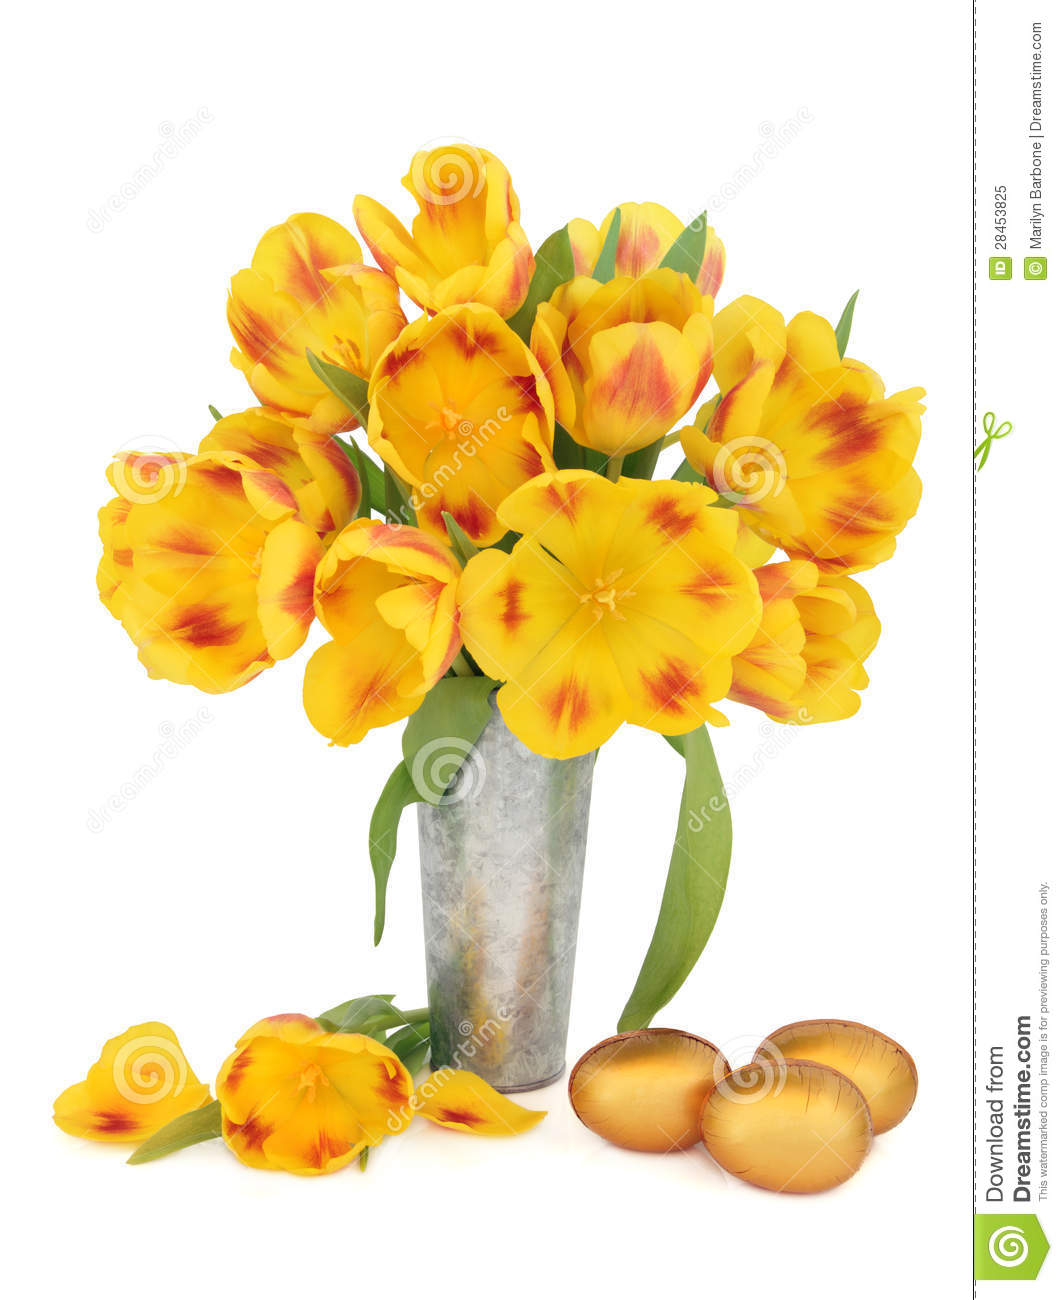 Easter flowers stock image image of tulip colorful 28453825 easter flowers mightylinksfo